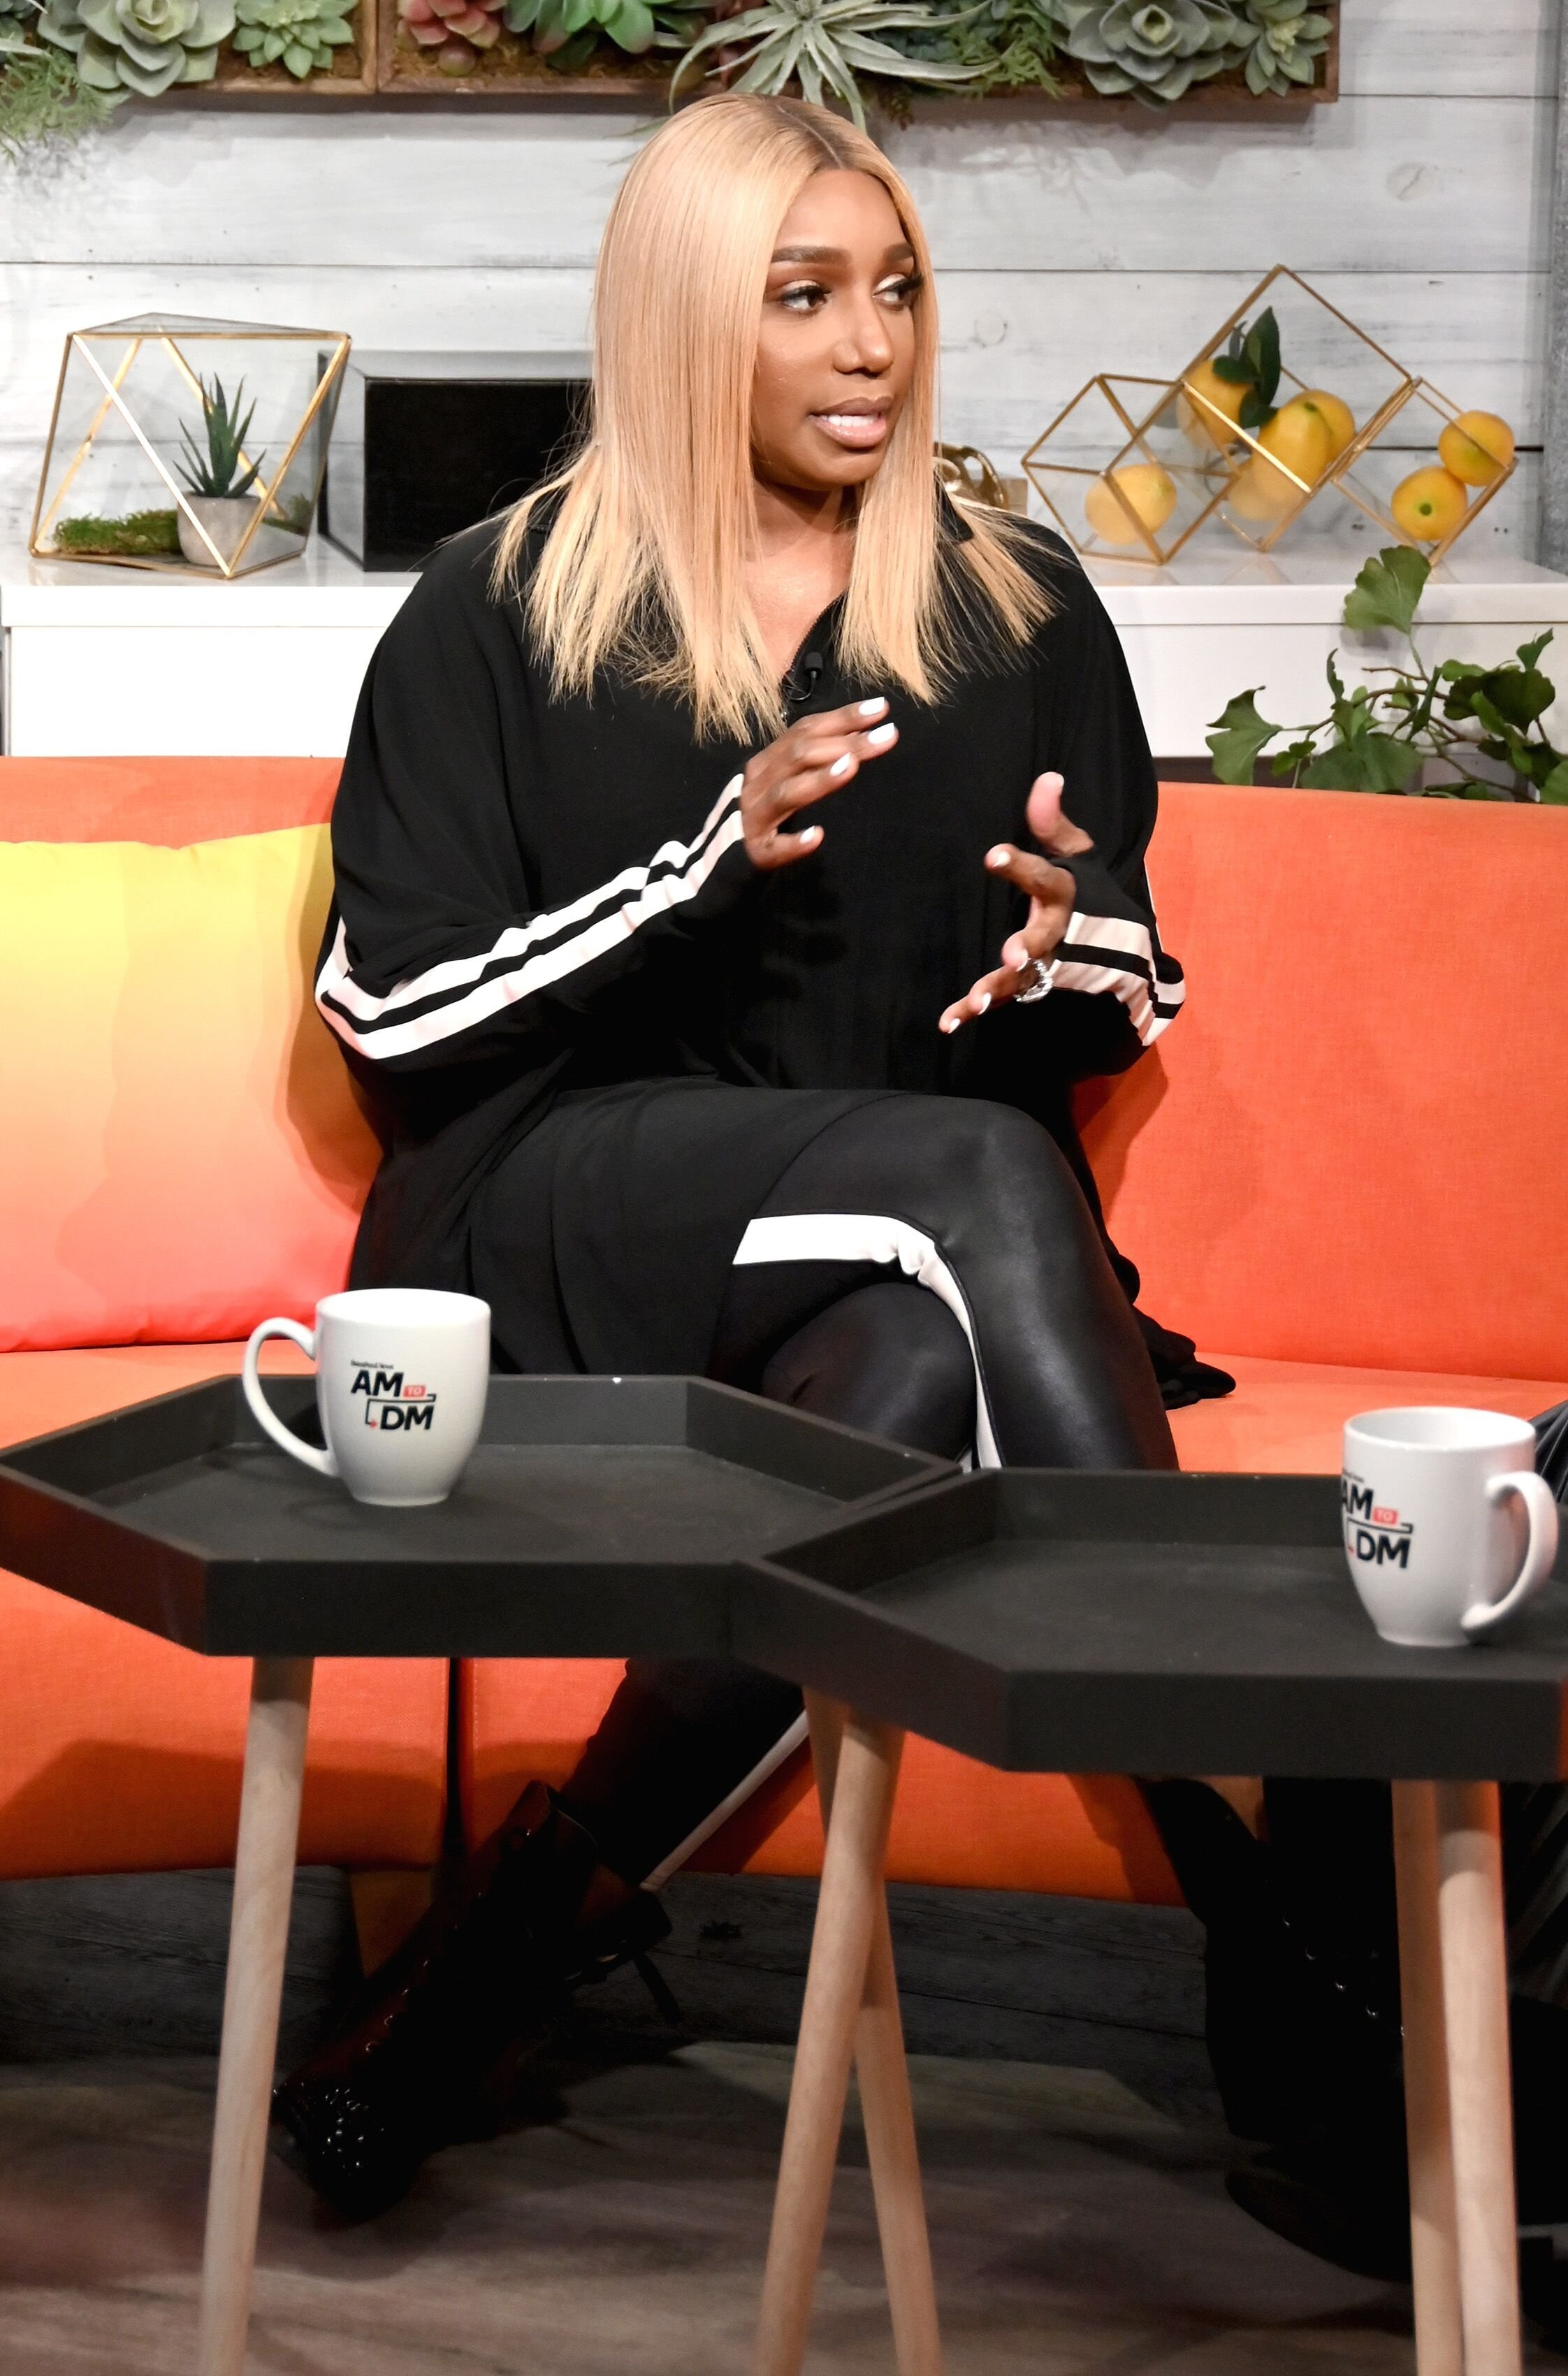 "NeNe Leakes visits BuzzFeed's ""AM TO DM"" to discuss the Bravo series ""The Real Housewives of Atlanta."" 